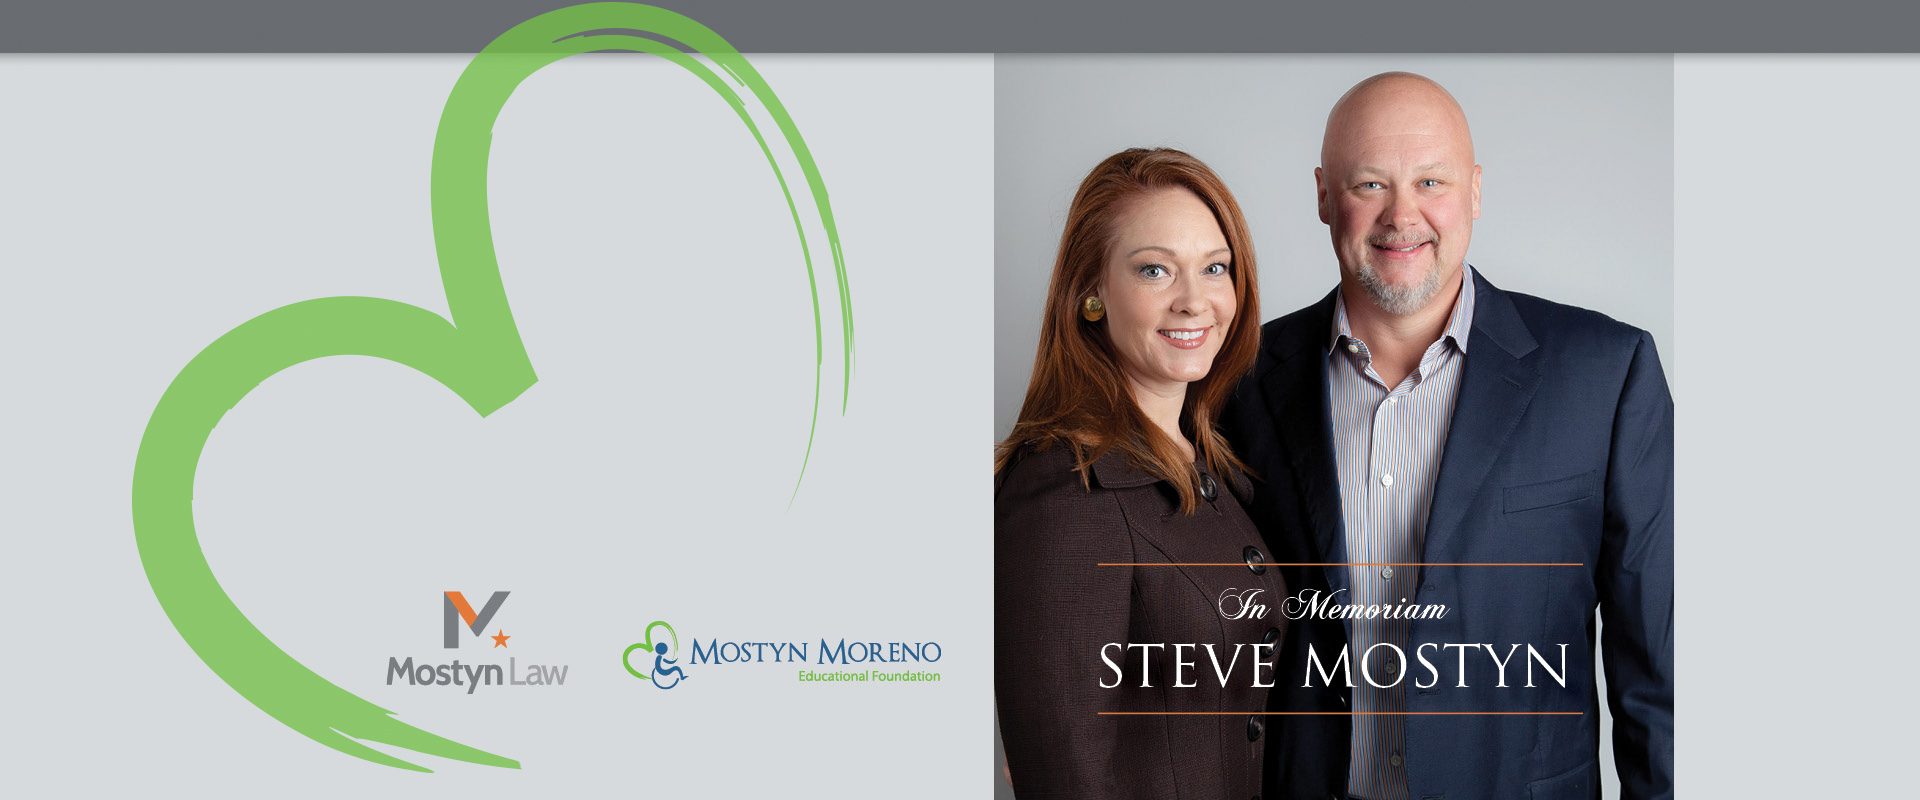 To the Friends & Family of Amber and Steve Mostyn